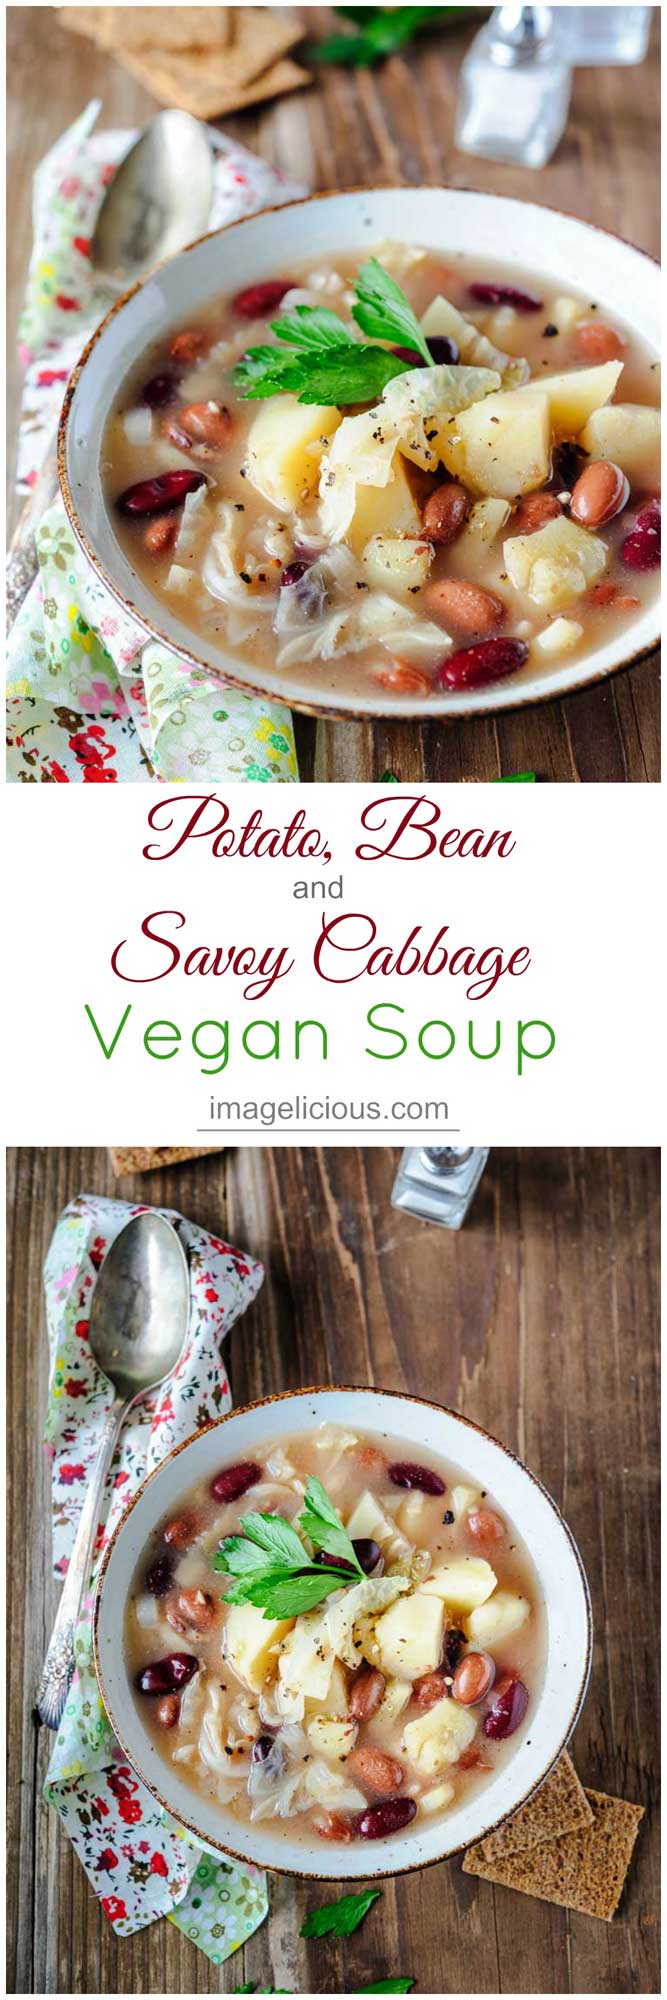 This Potato, Bean and Savoy Cabbage Vegan Soup is filling, warming, cozy, and delicious. Even carnivores will love it and ask for seconds. Easy and fast to make | Imagelicious #soup #wintersoup #vegetablesoup #vegansoup #vegan #vegetarian